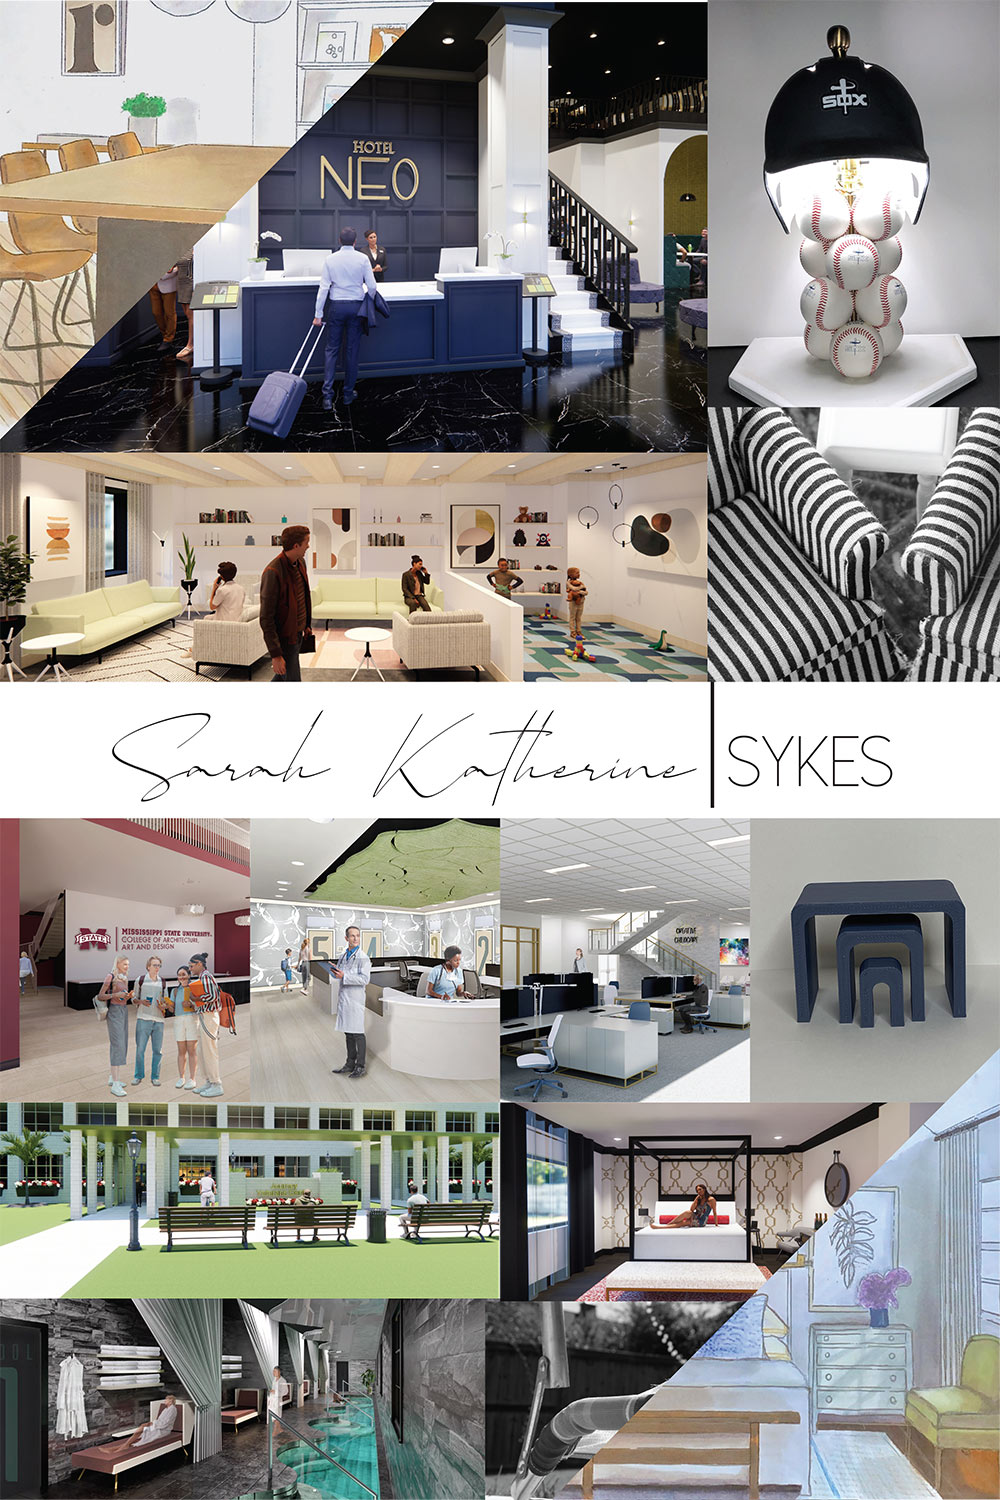 senior interior design board by Kat Sykes